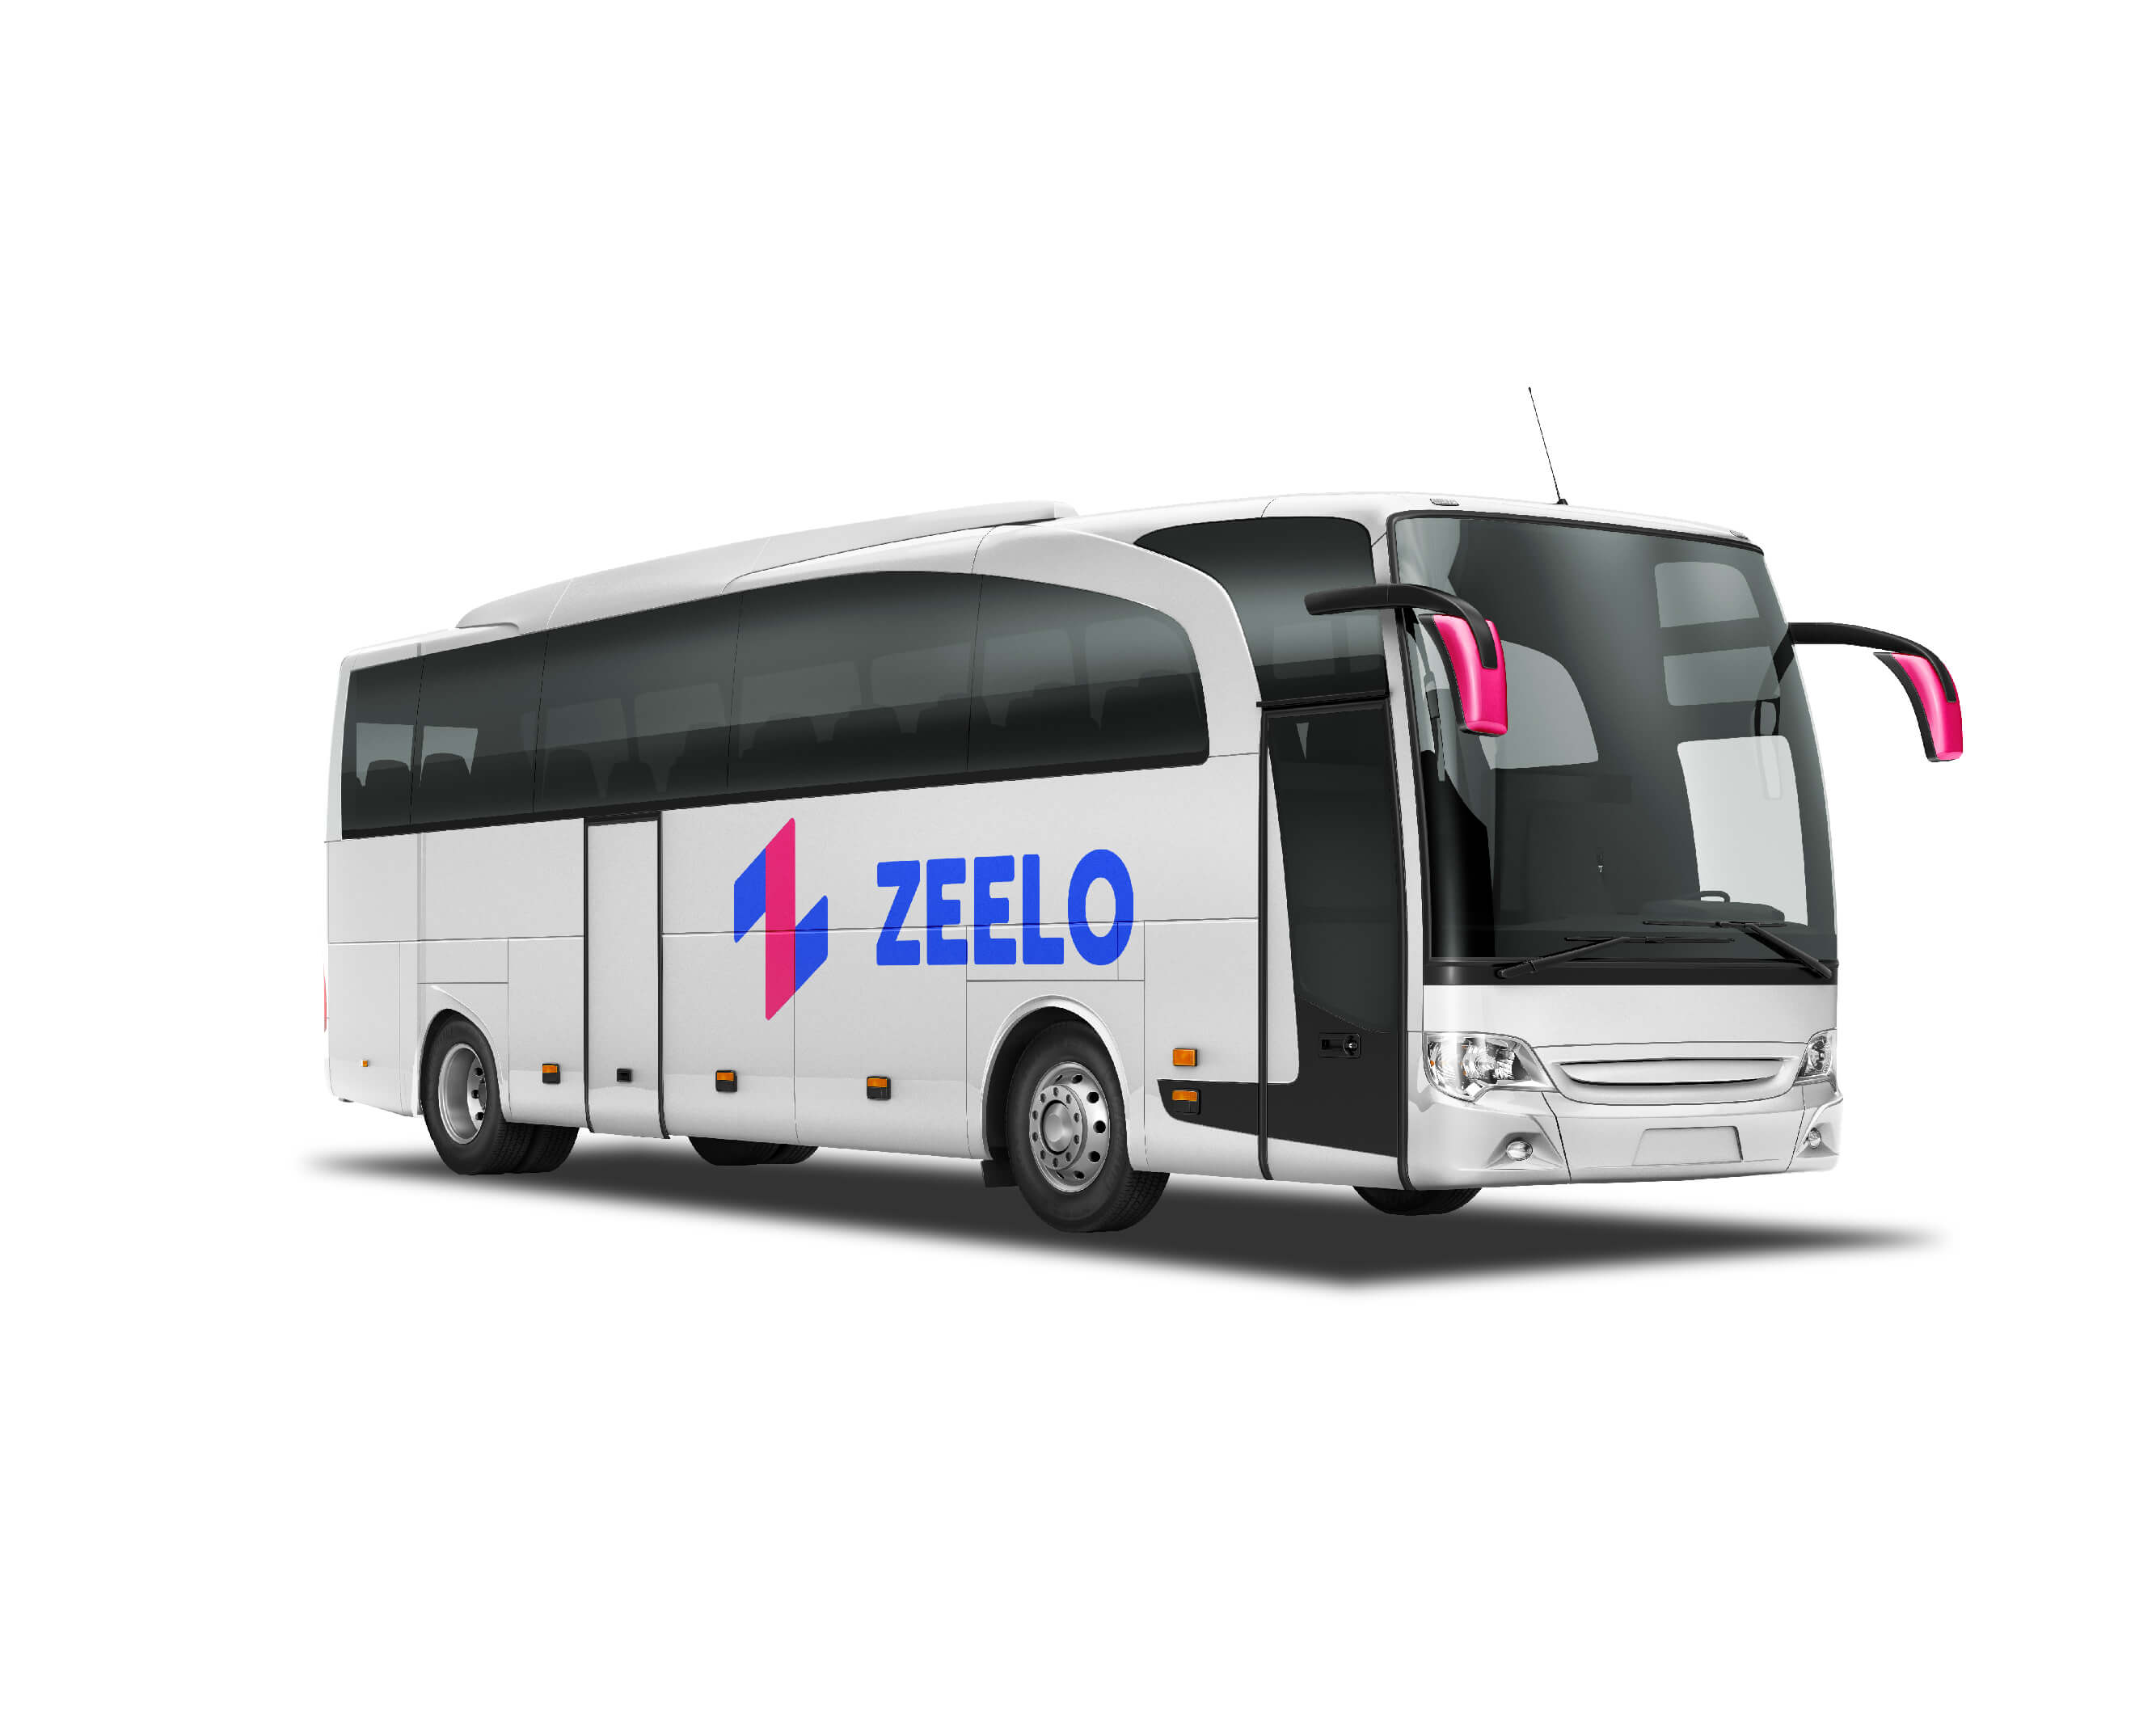 Executive Mini-Coach (Air con, Leather Seating, Additional Luggage Space)